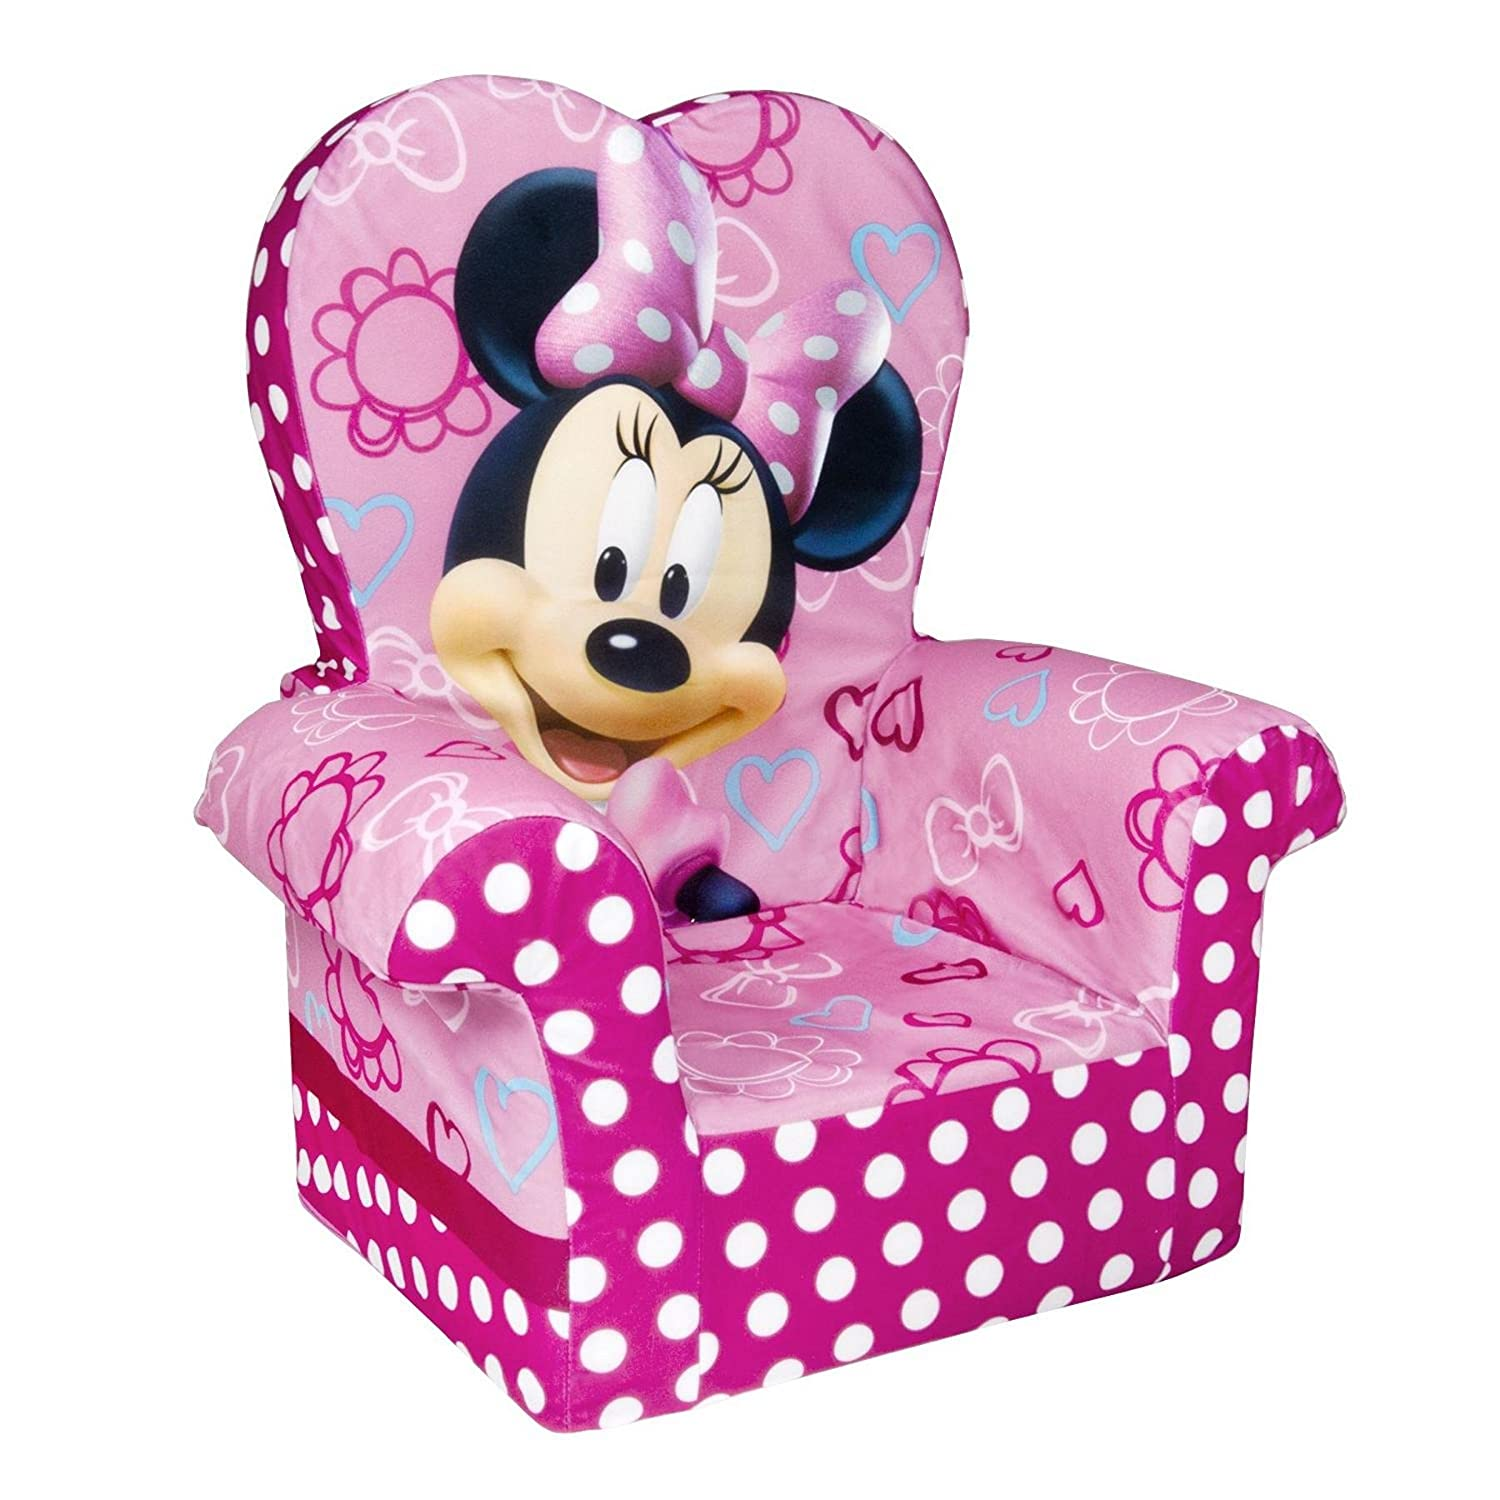 saucer chair for kids recliner garden cushions uk minnie mouse furniture - totally kids, bedrooms bedroom ideas